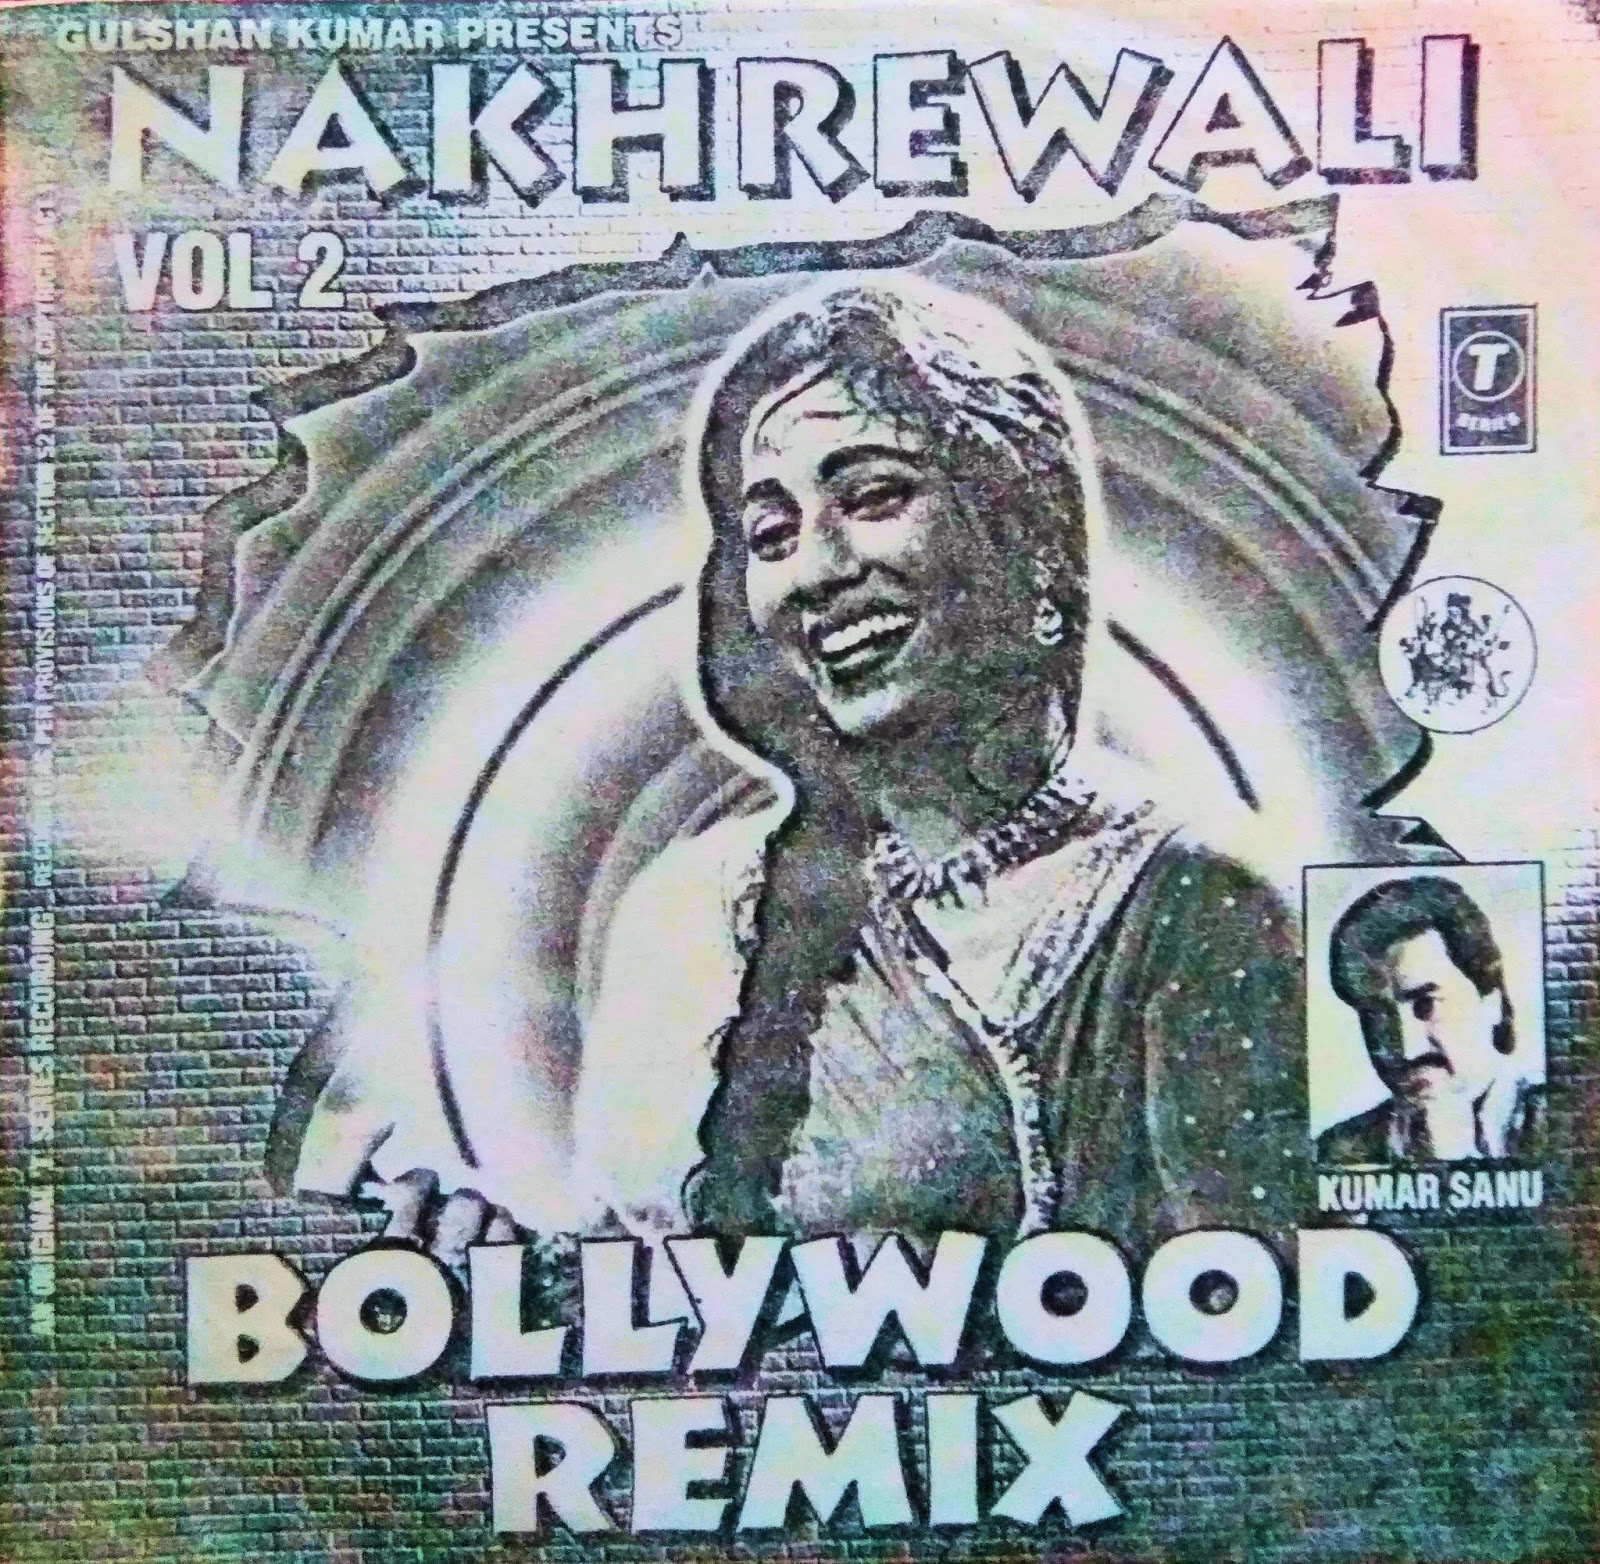 Nakhrewali Bollywood Remix - Vol 2 - The Ultimate Collection